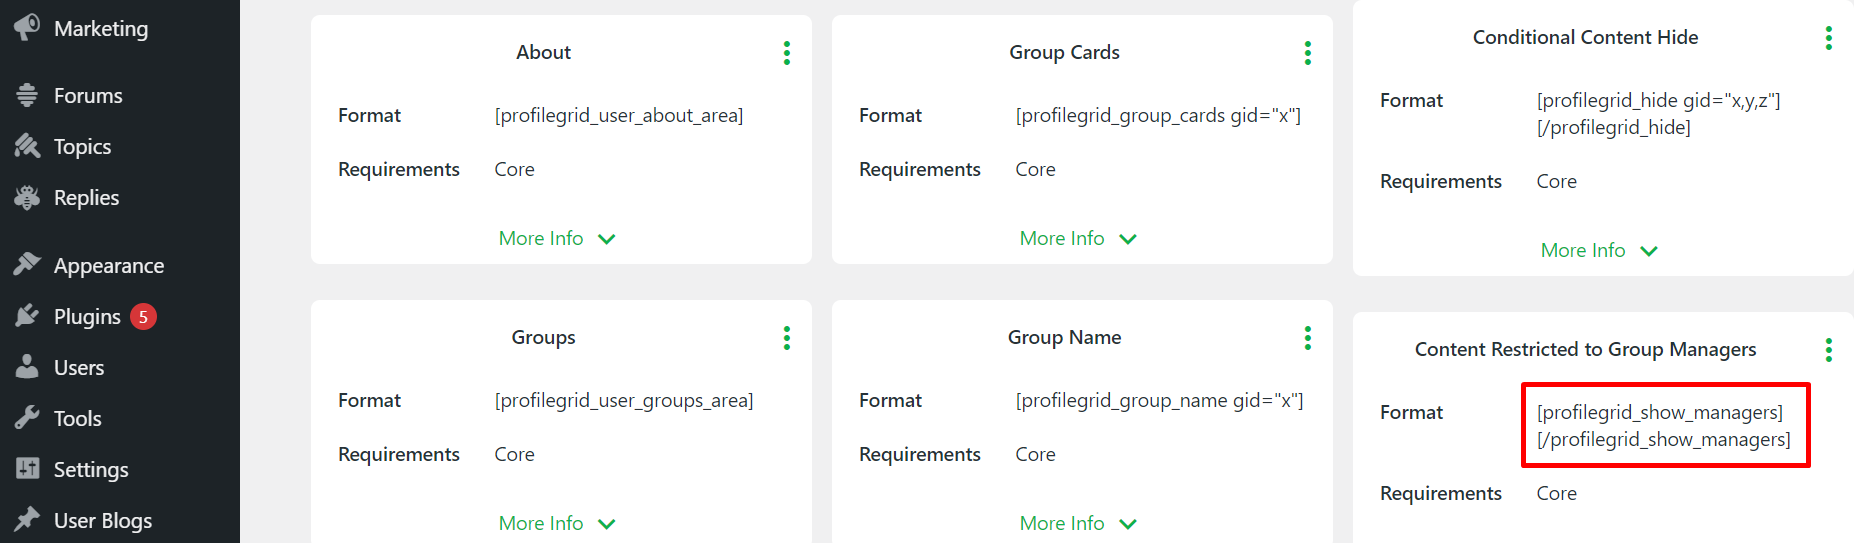 Content Restricted to Group Managers